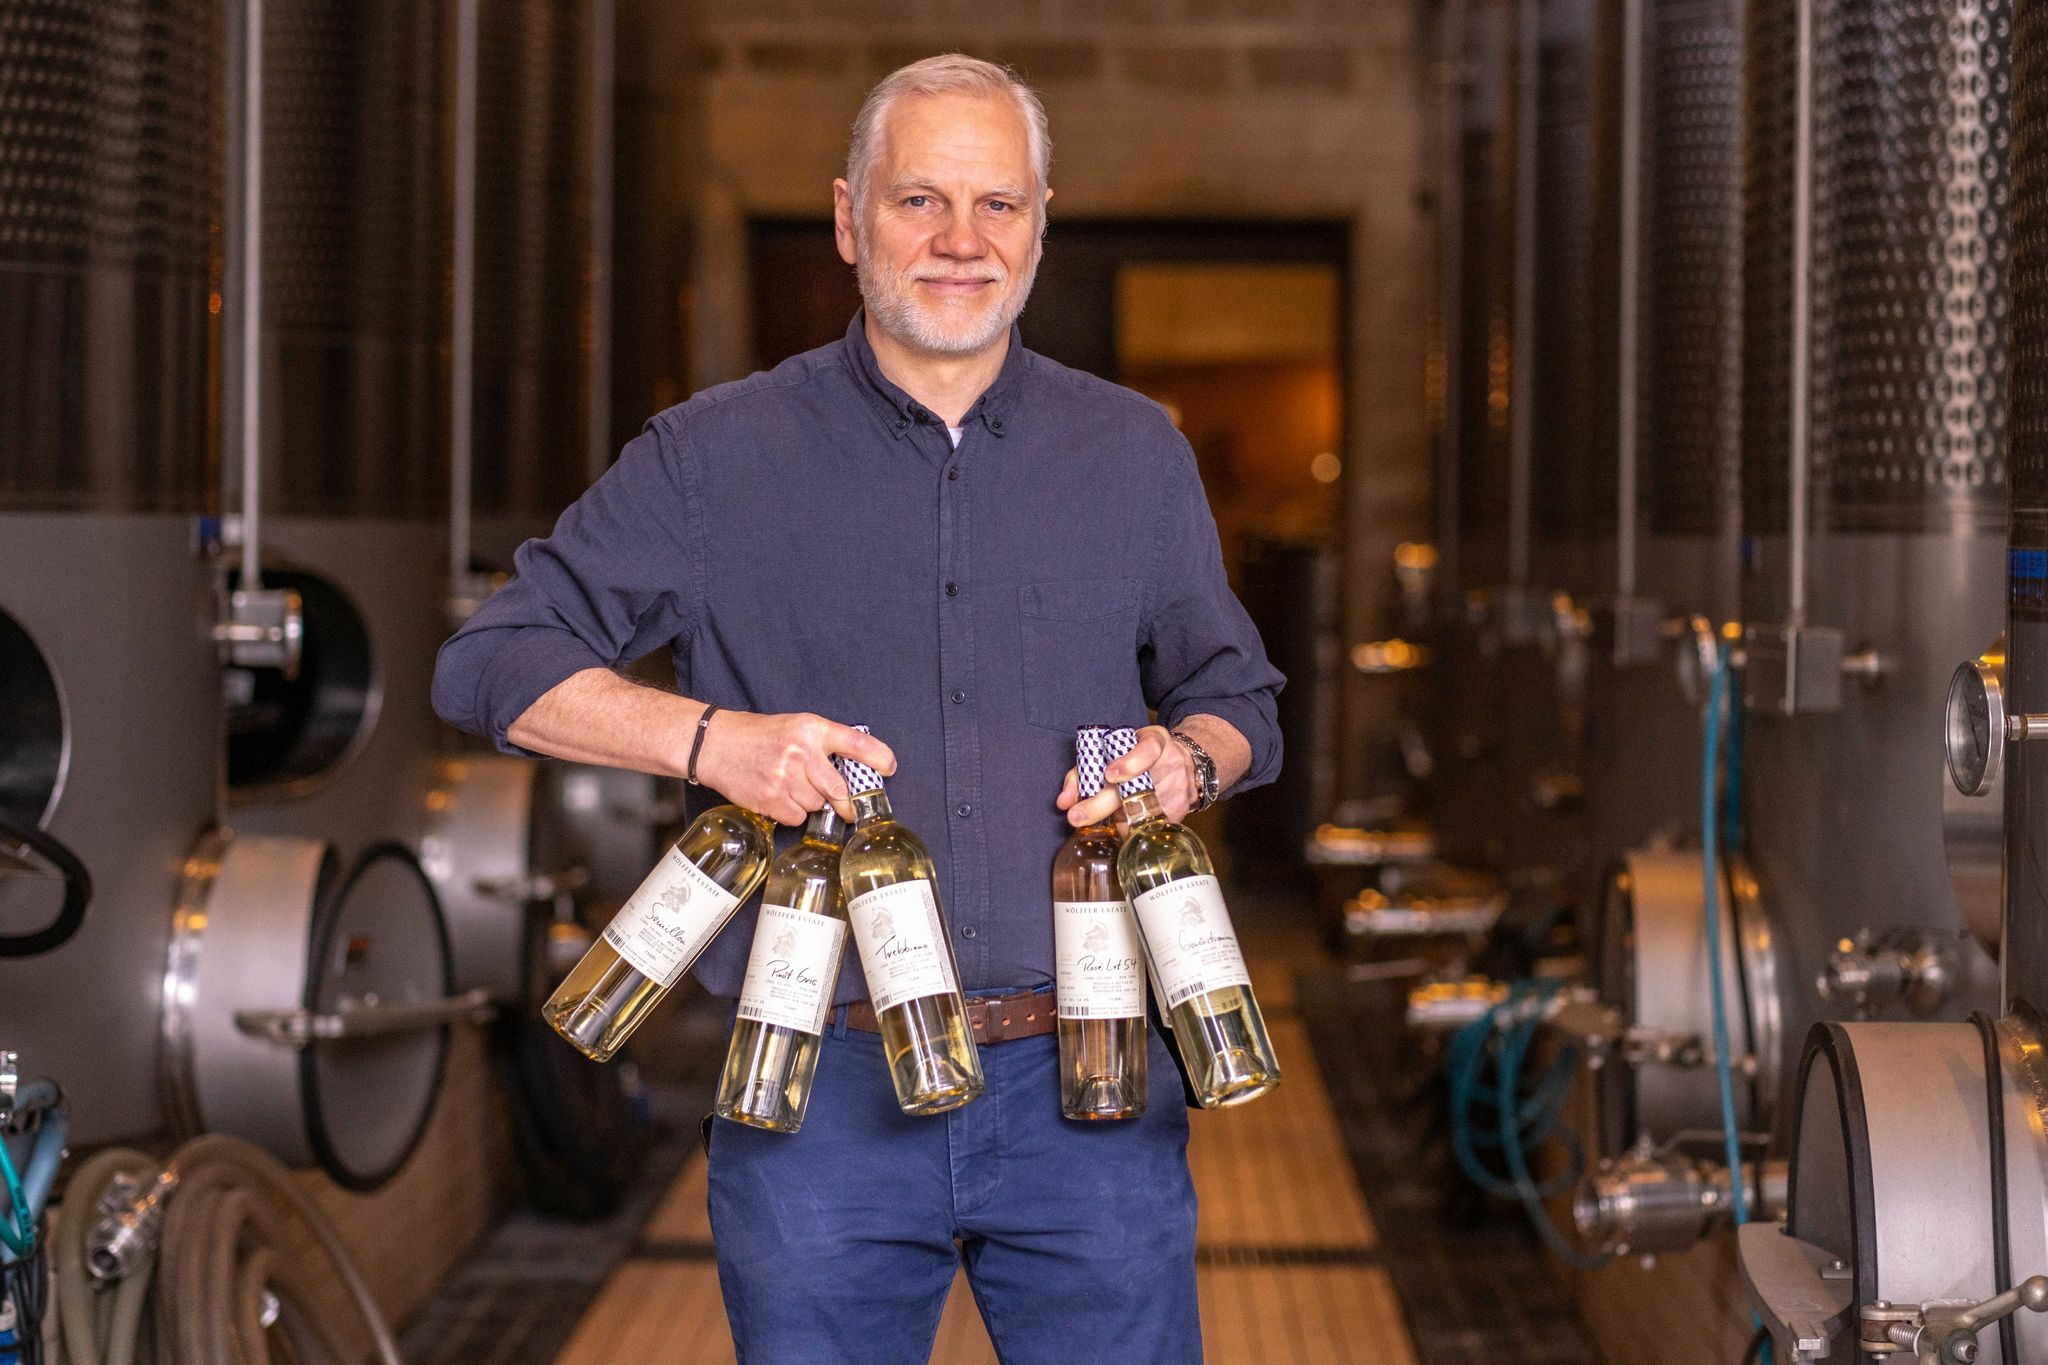 Wölffer Estate Vineyard's winemaker Roman Roth with the Cellar Series collection of small batch releases of artisanal wines.